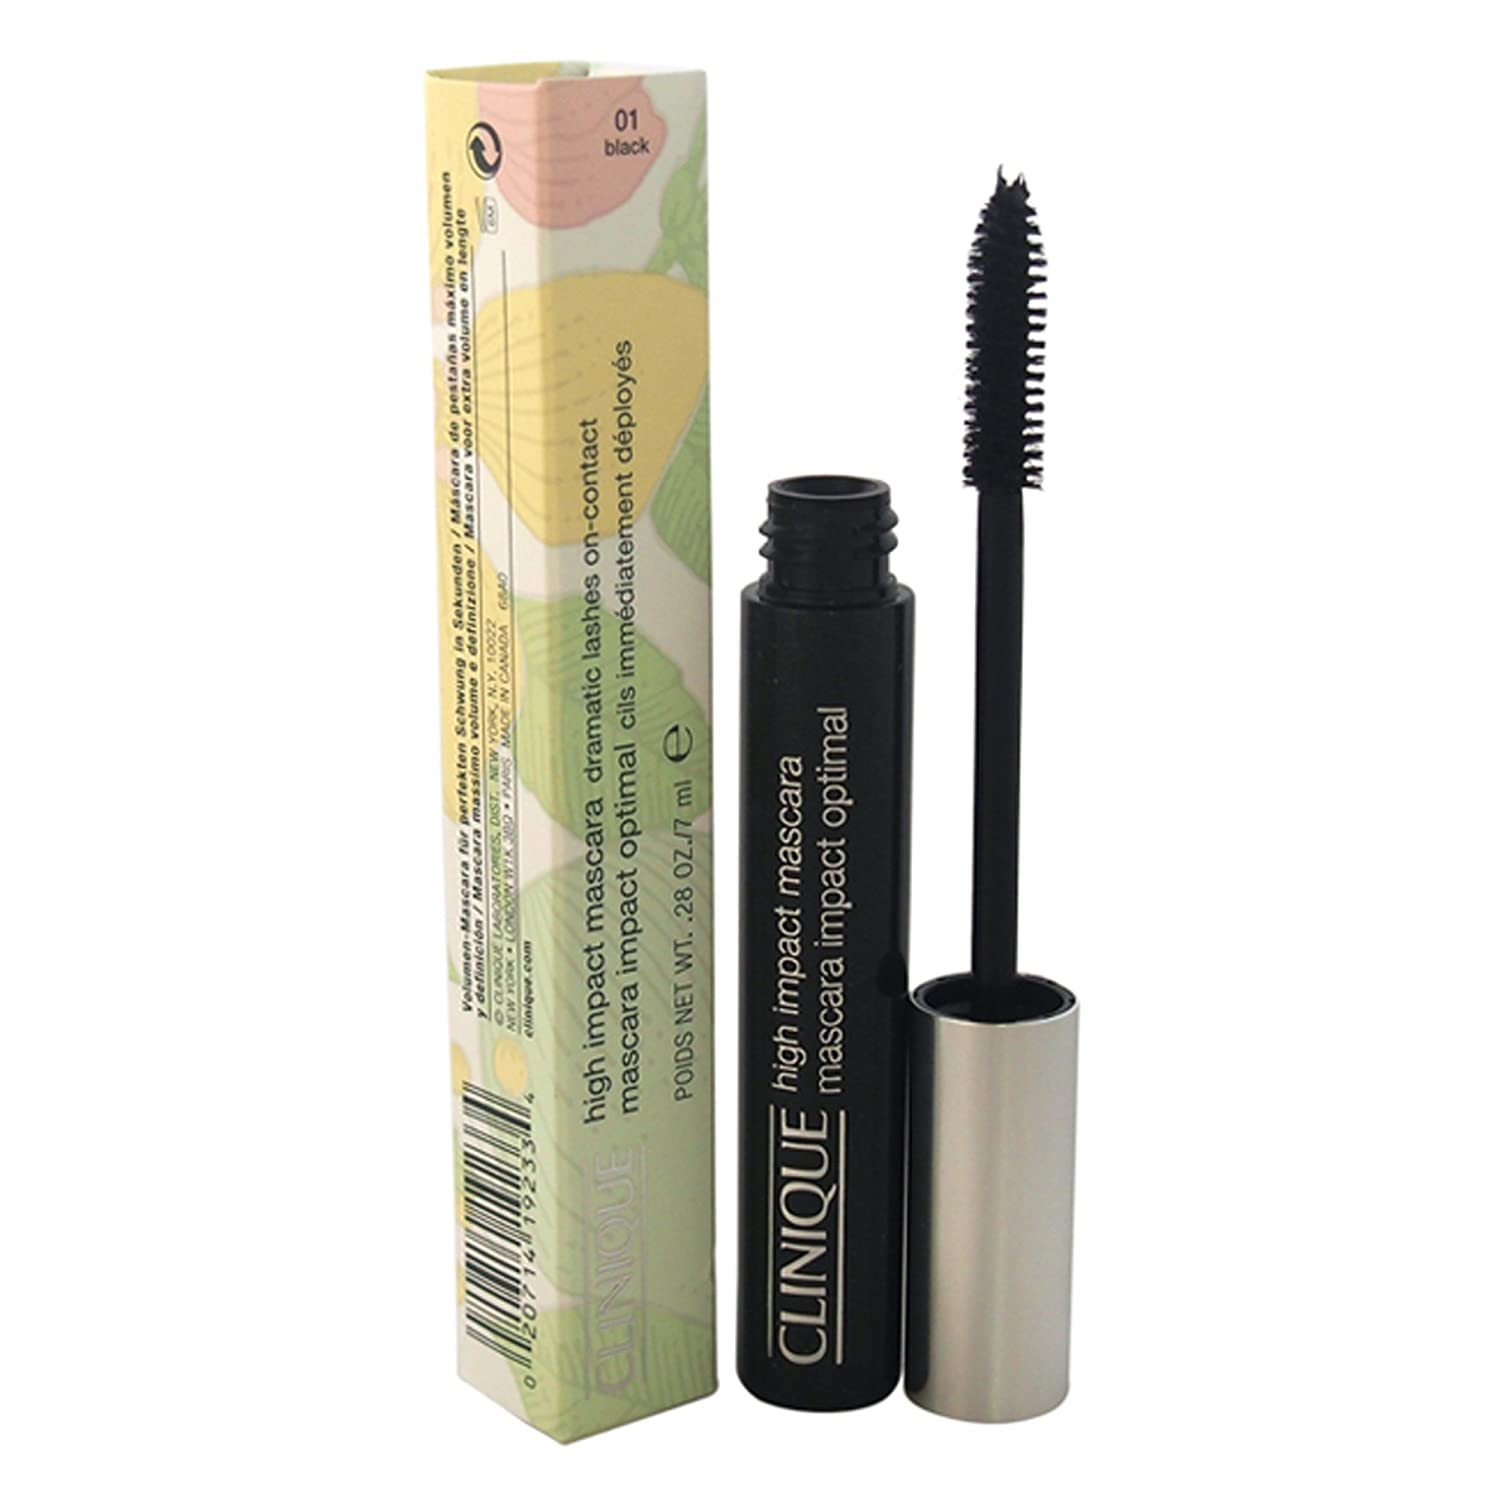 High Impact Mascara - 01 Black by Clinique for Women - 0.28 oz Mascara 0020714192334 CLI00026